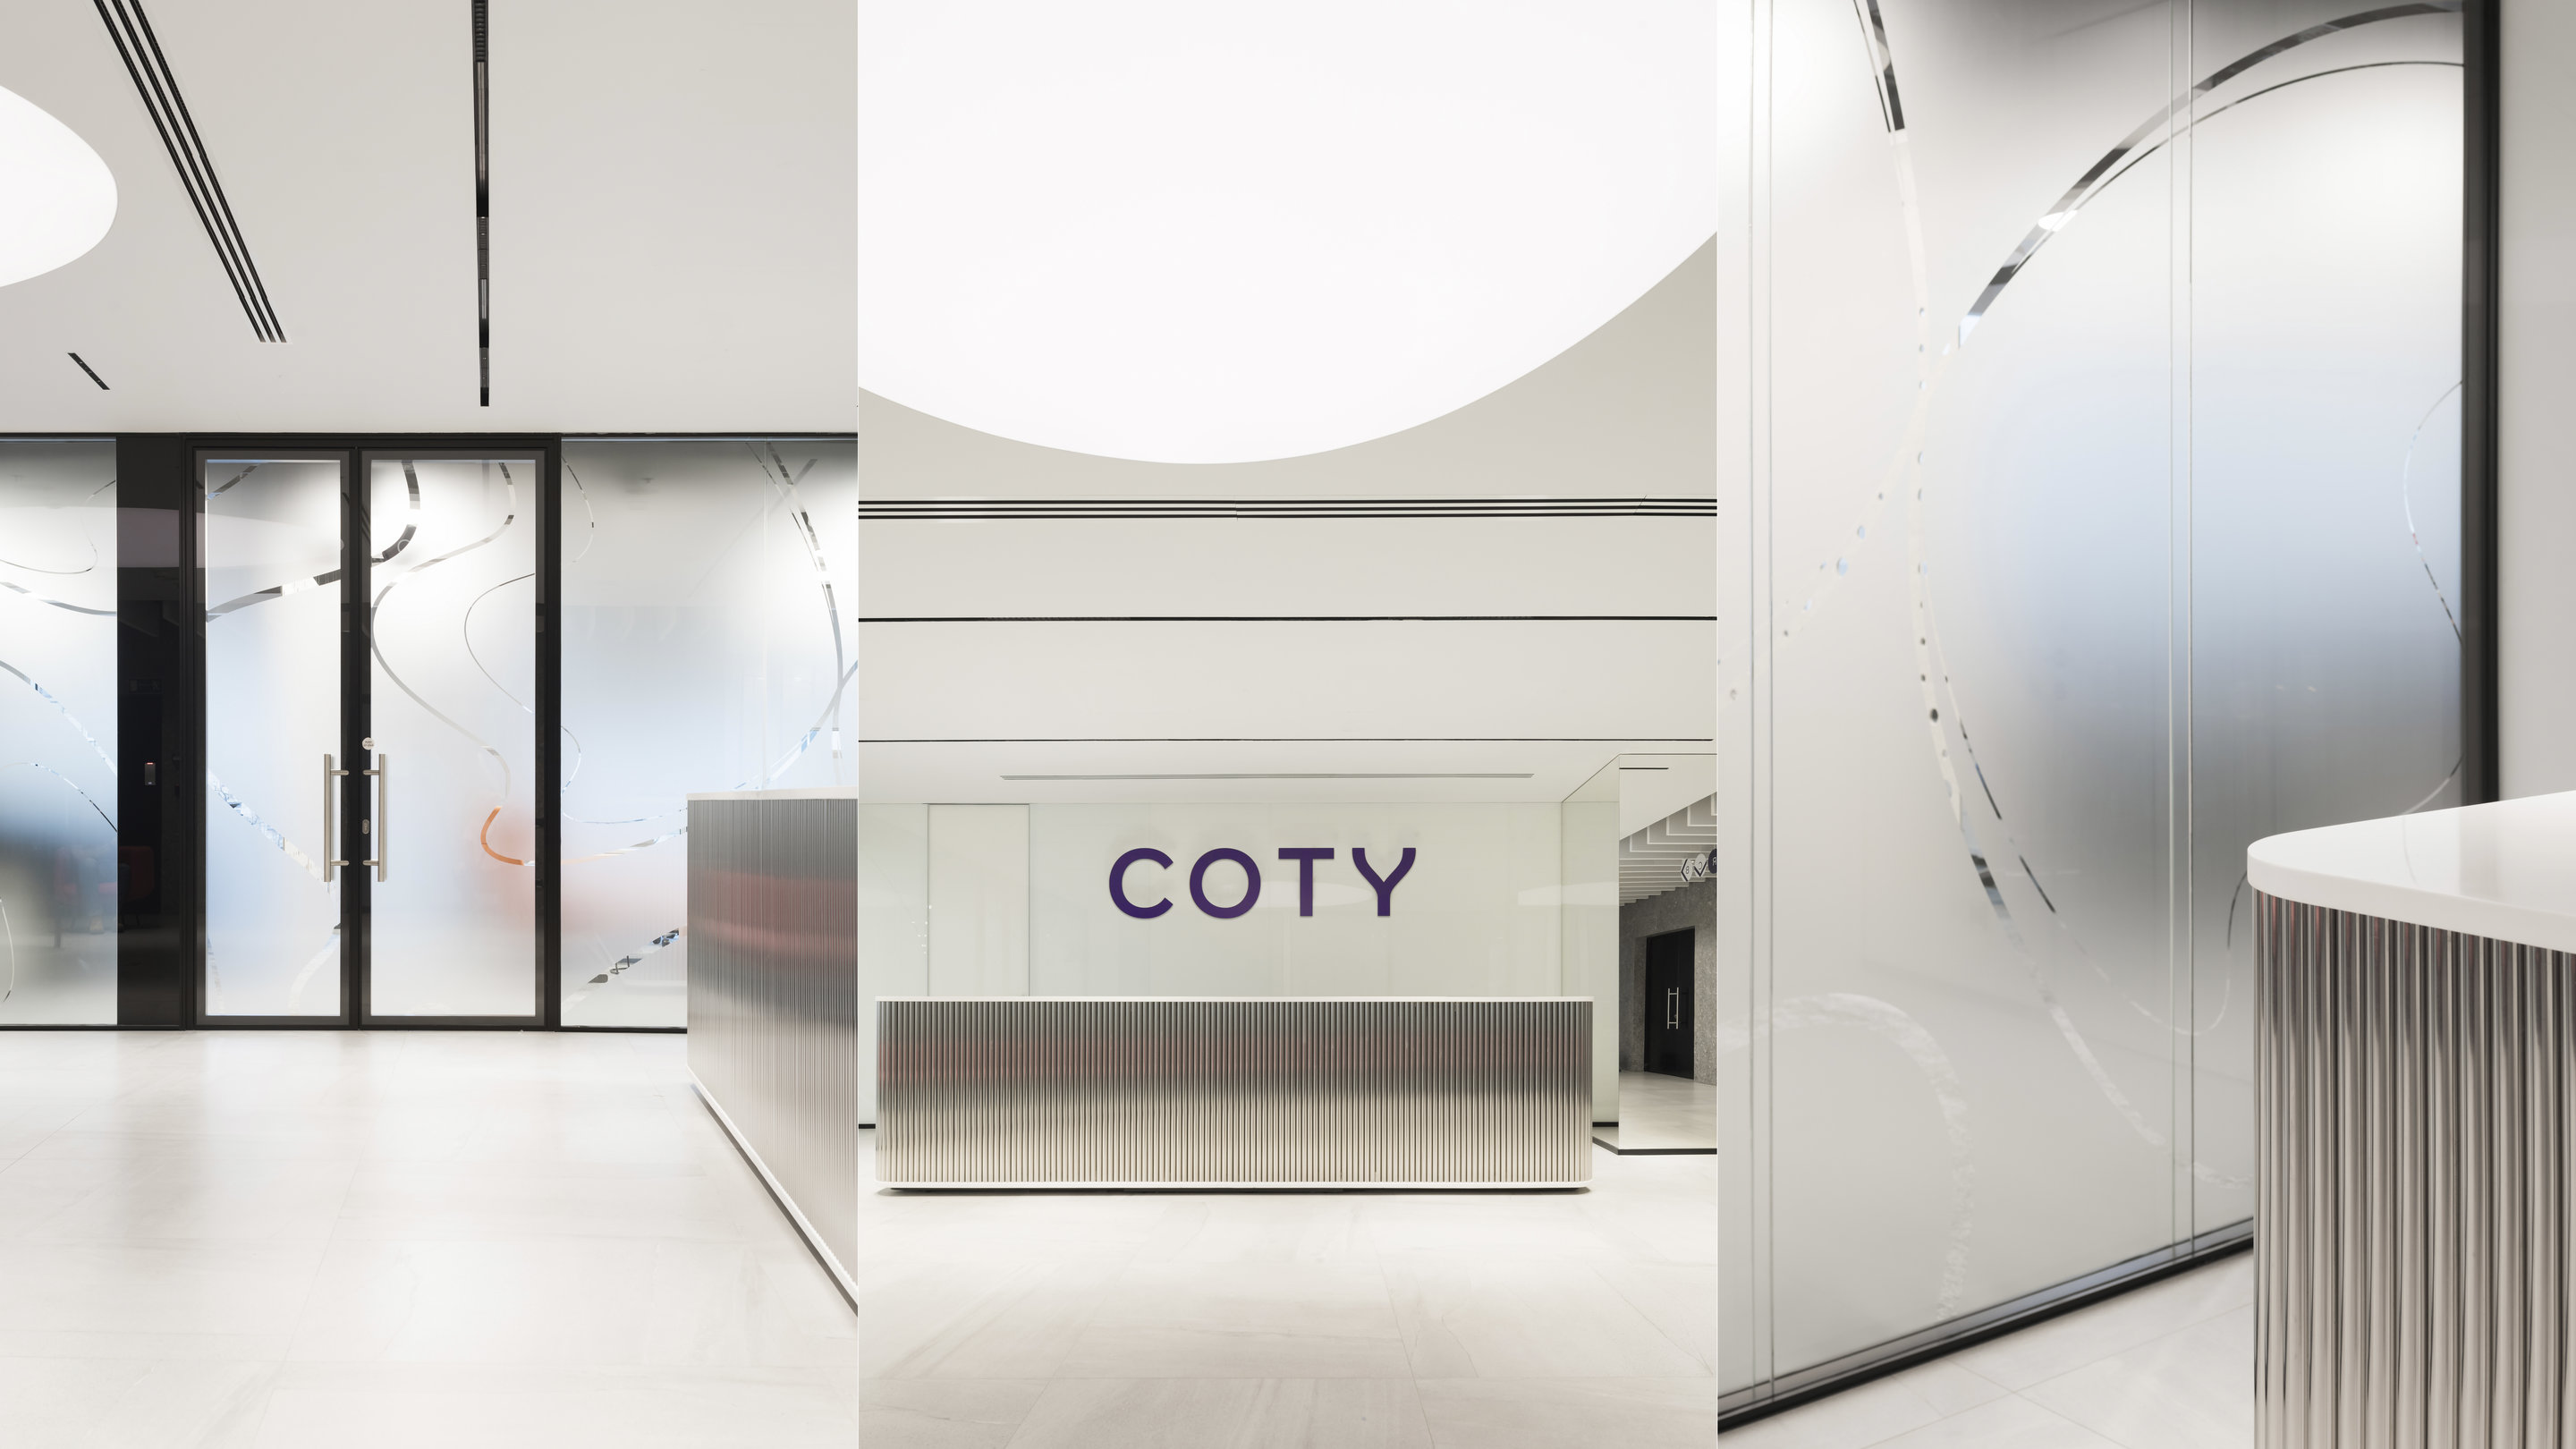 Coty X Guide